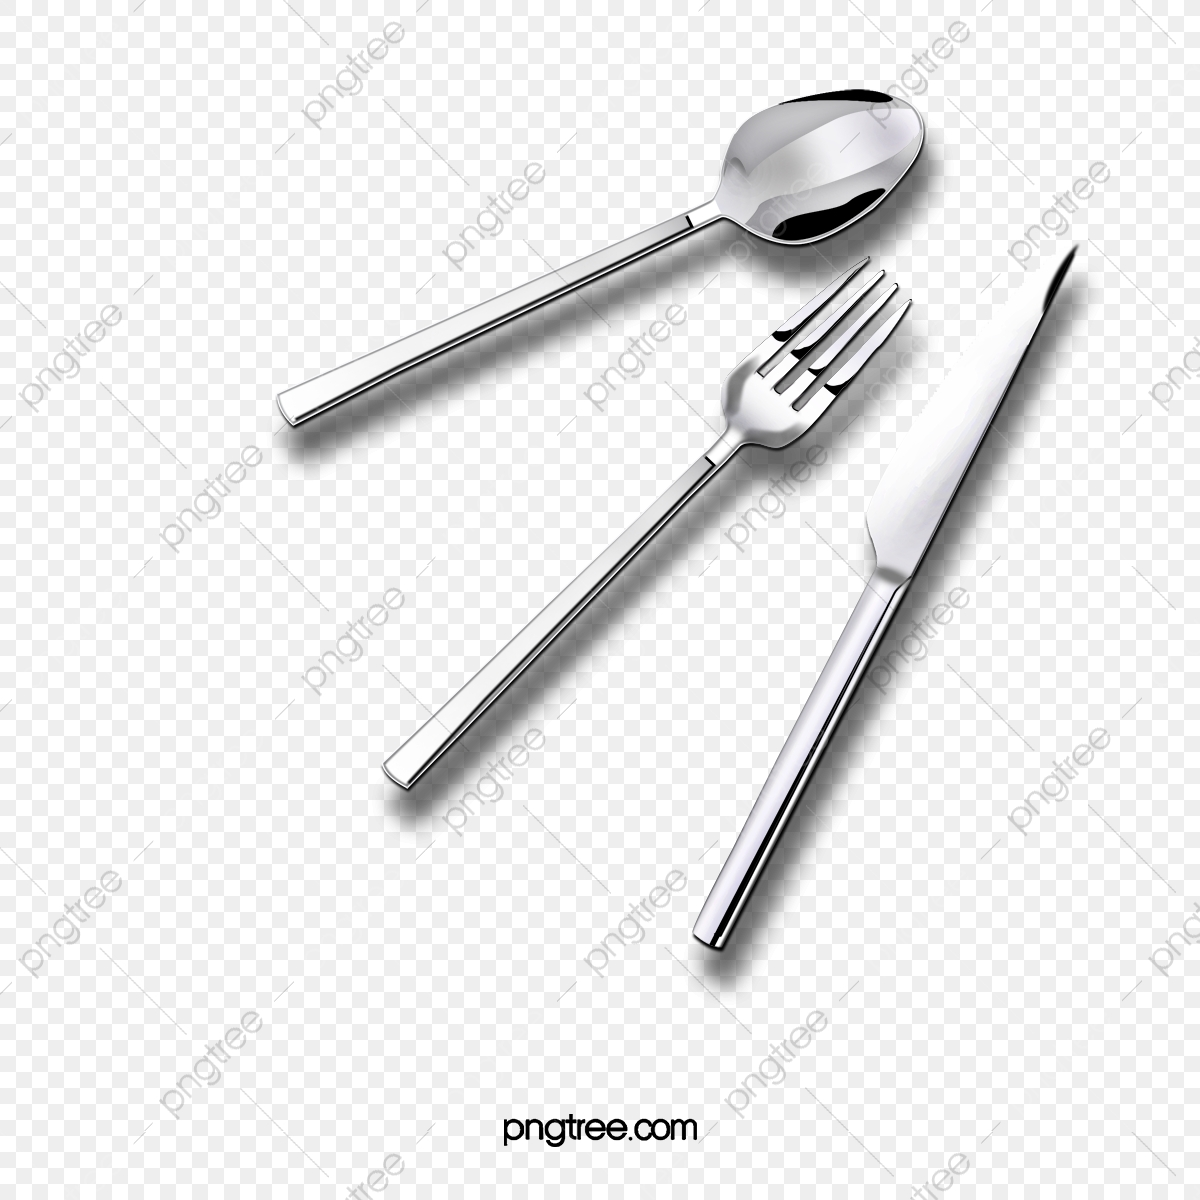 hight resolution of commercial use resource upgrade to premium plan and get license authorization upgradenow knife and fork knife clipart